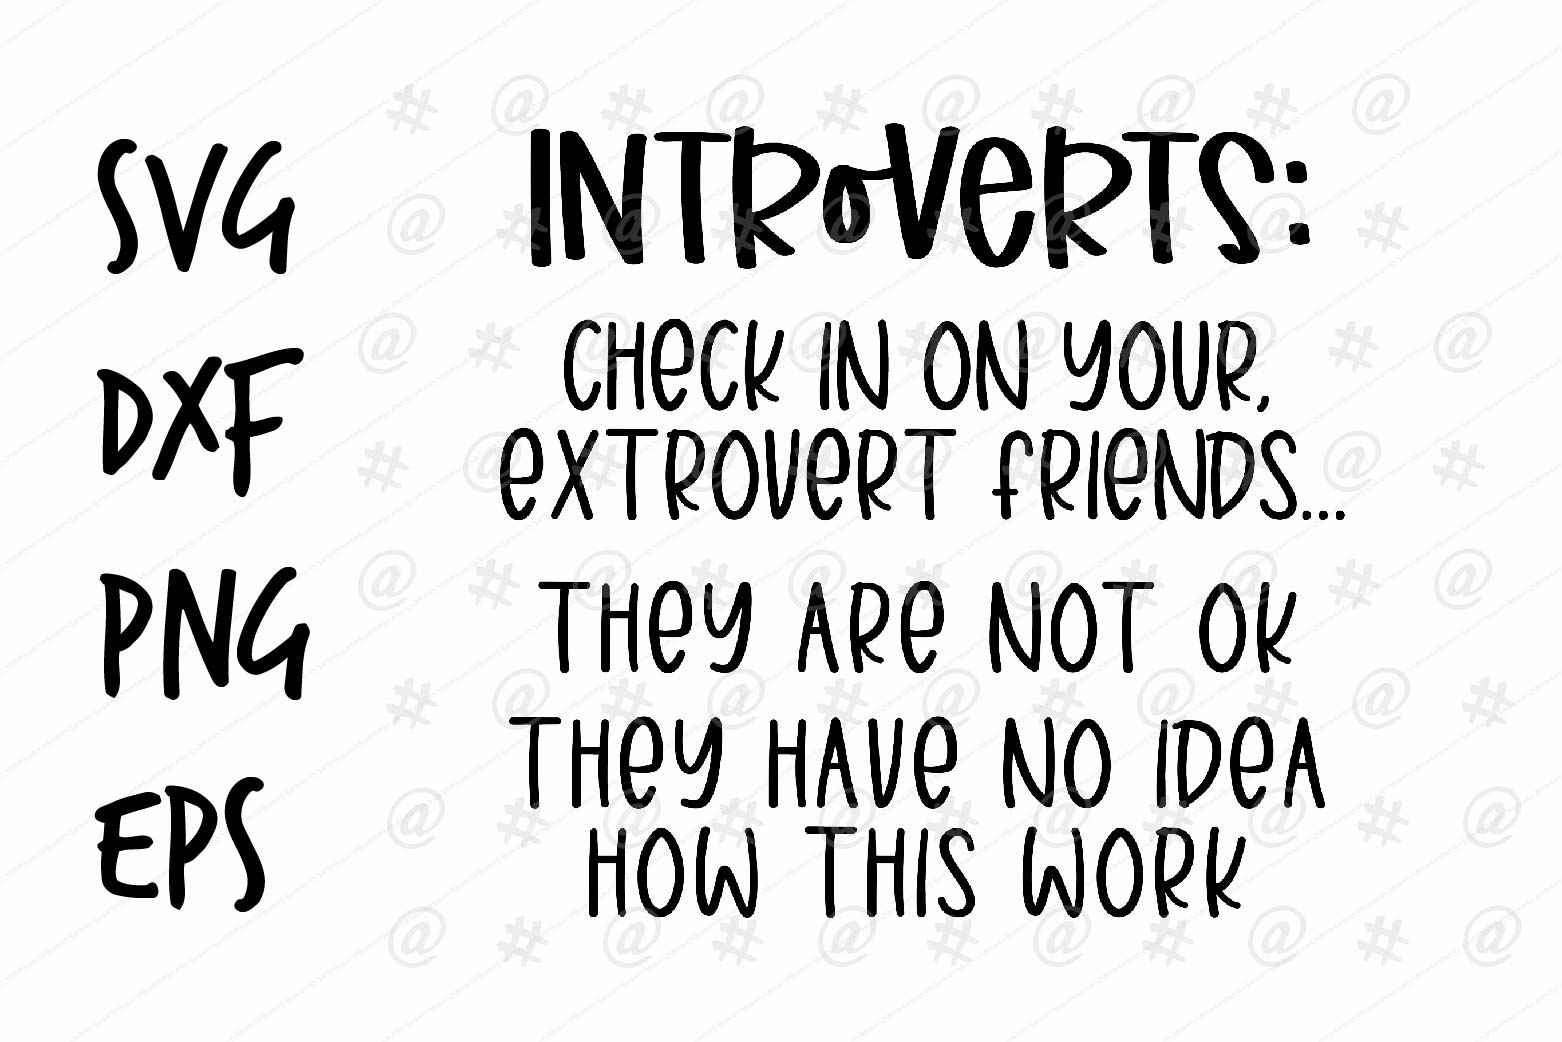 Download Free Introvert Design Graphic By Spoonyprint Creative Fabrica for Cricut Explore, Silhouette and other cutting machines.